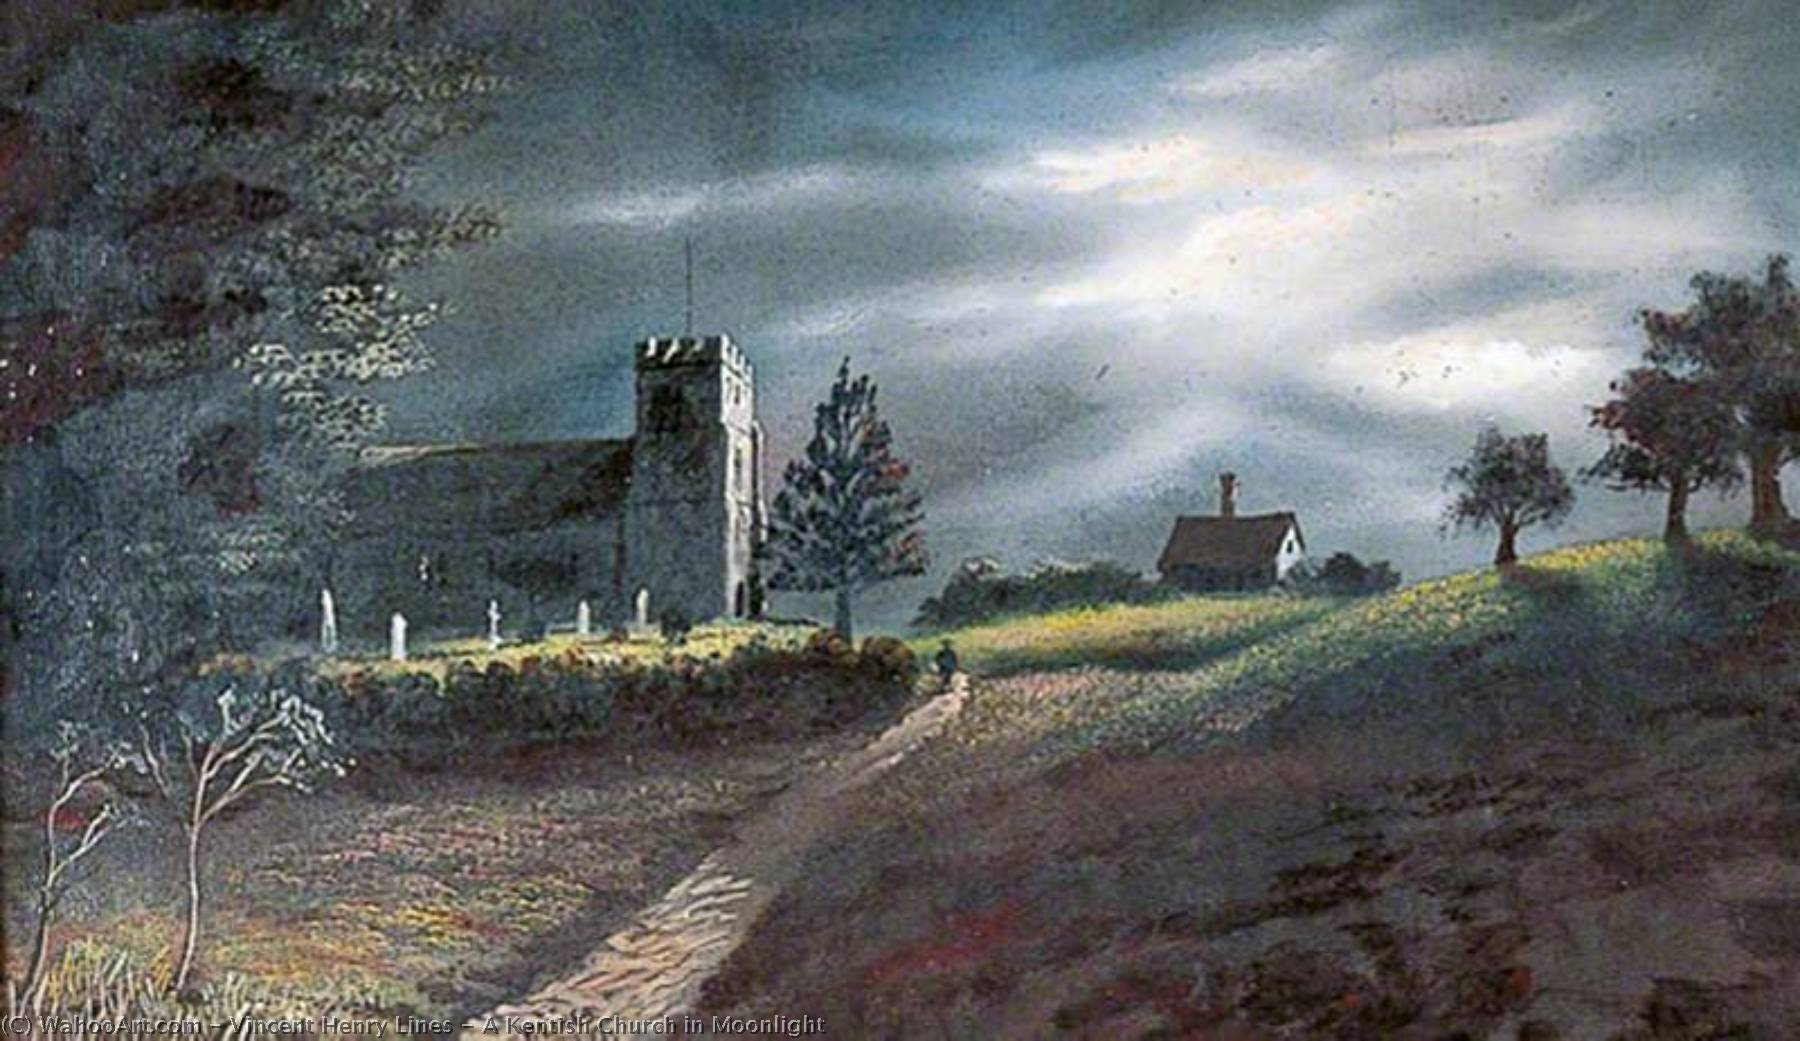 Wikioo.org - The Encyclopedia of Fine Arts - Painting, Artwork by Vincent Henry Lines - A Kentish Church in Moonlight